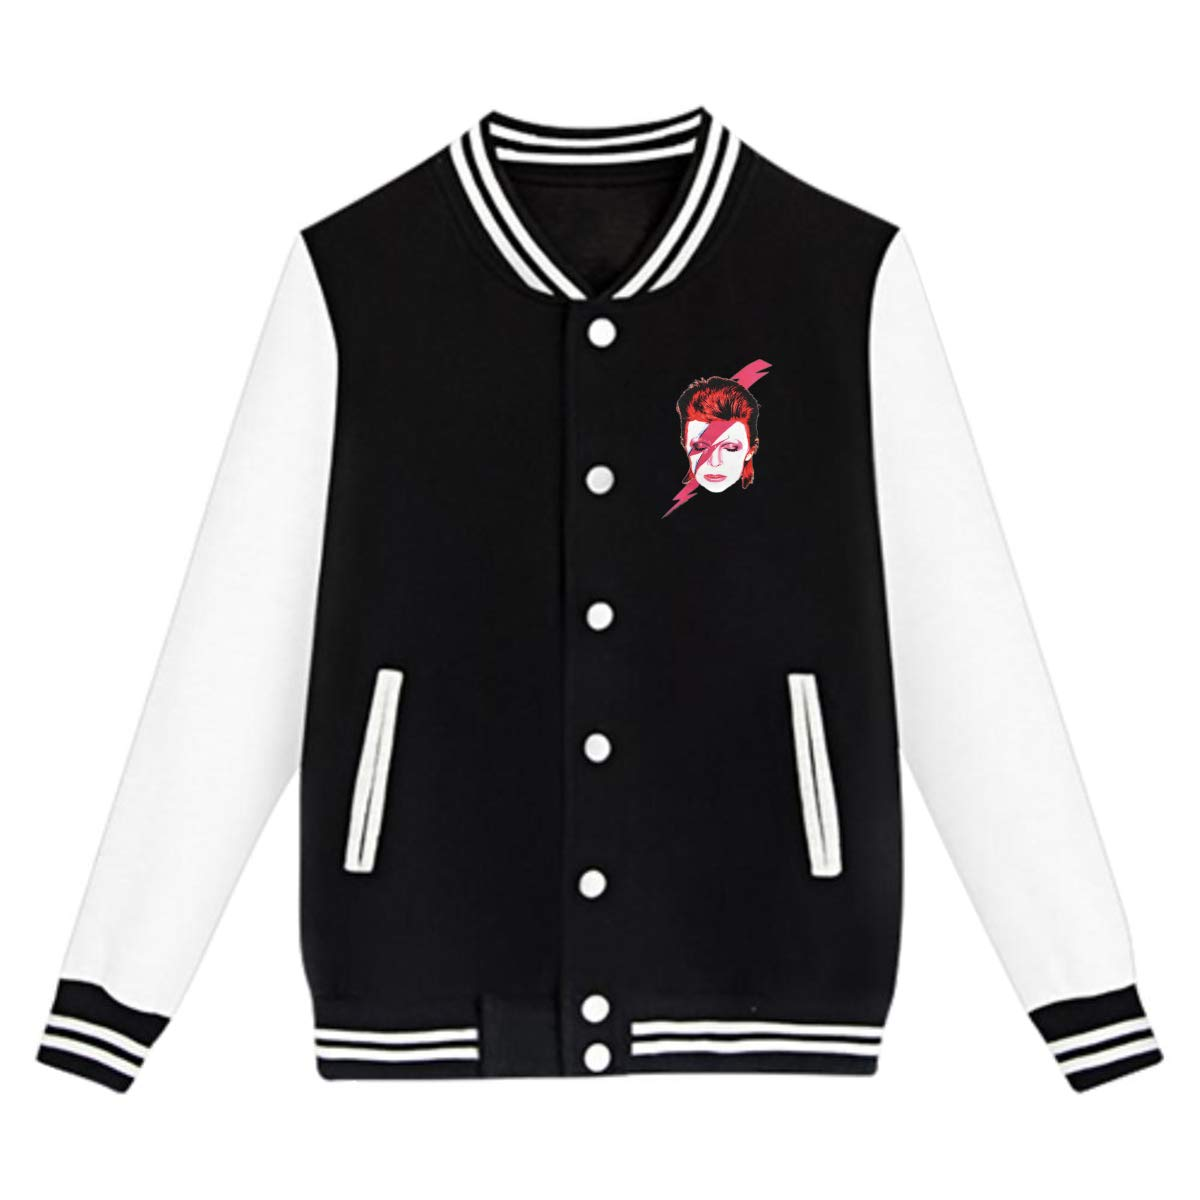 LIALUER David Bowie Bowie Teenager Baseball Jacket Uniform V Sweater Coat